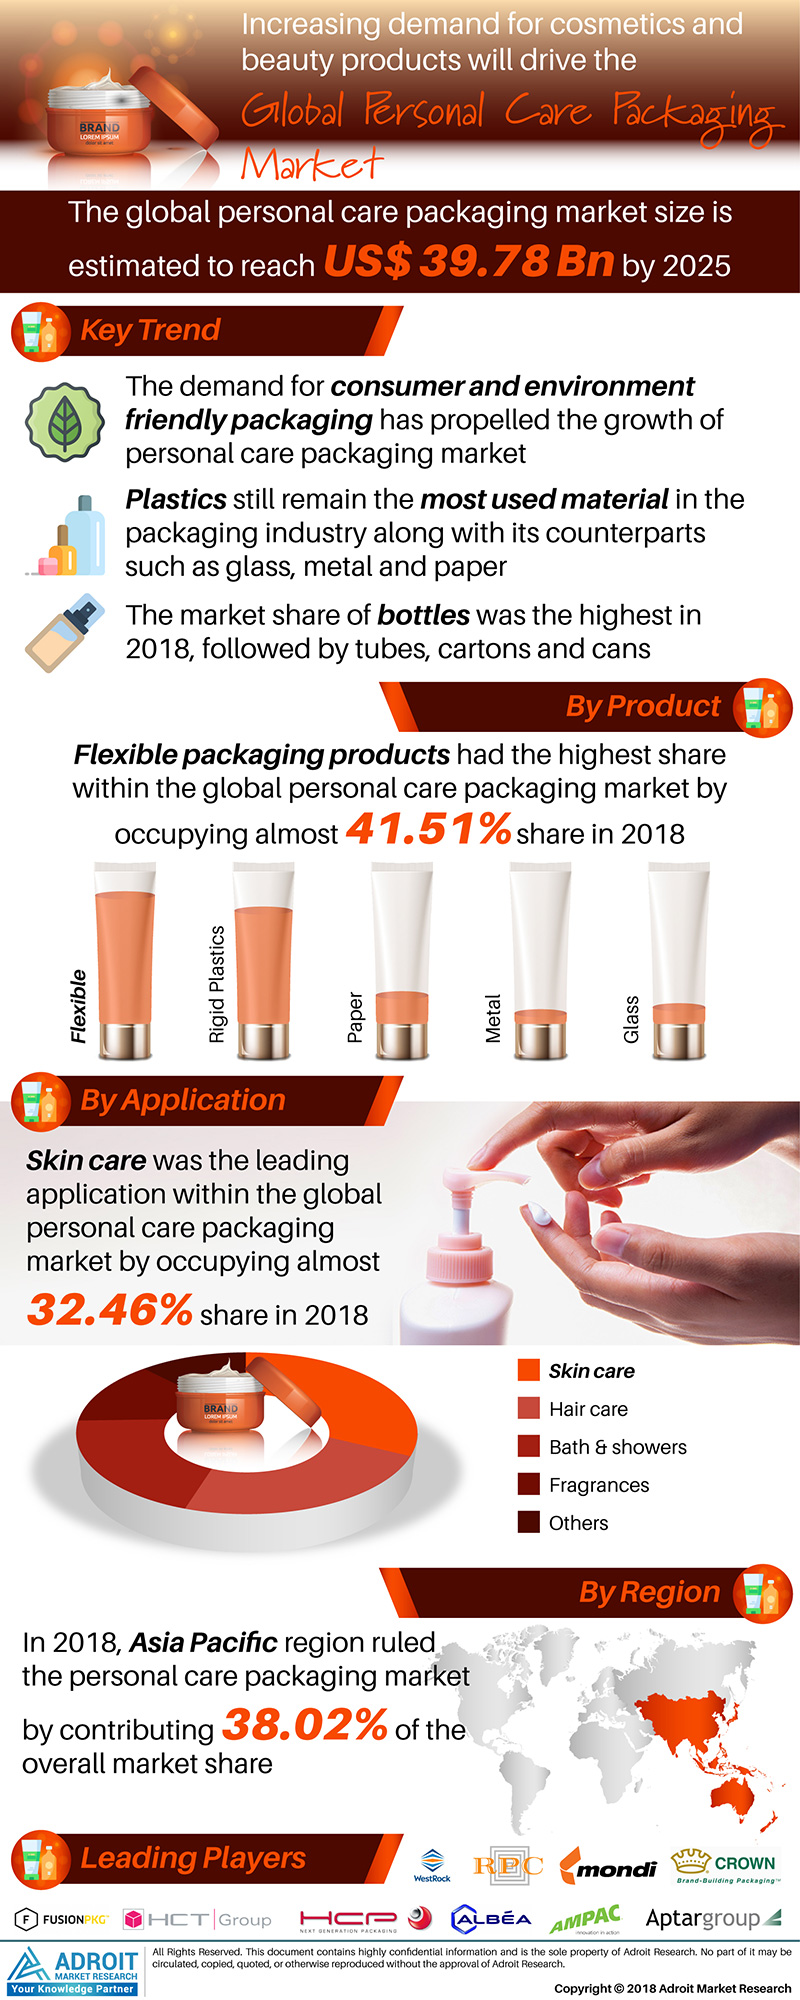 Global Personal Care Packaging Market Size By Product, Application, Packaging type, Region, and Forecast 2018 to 2025